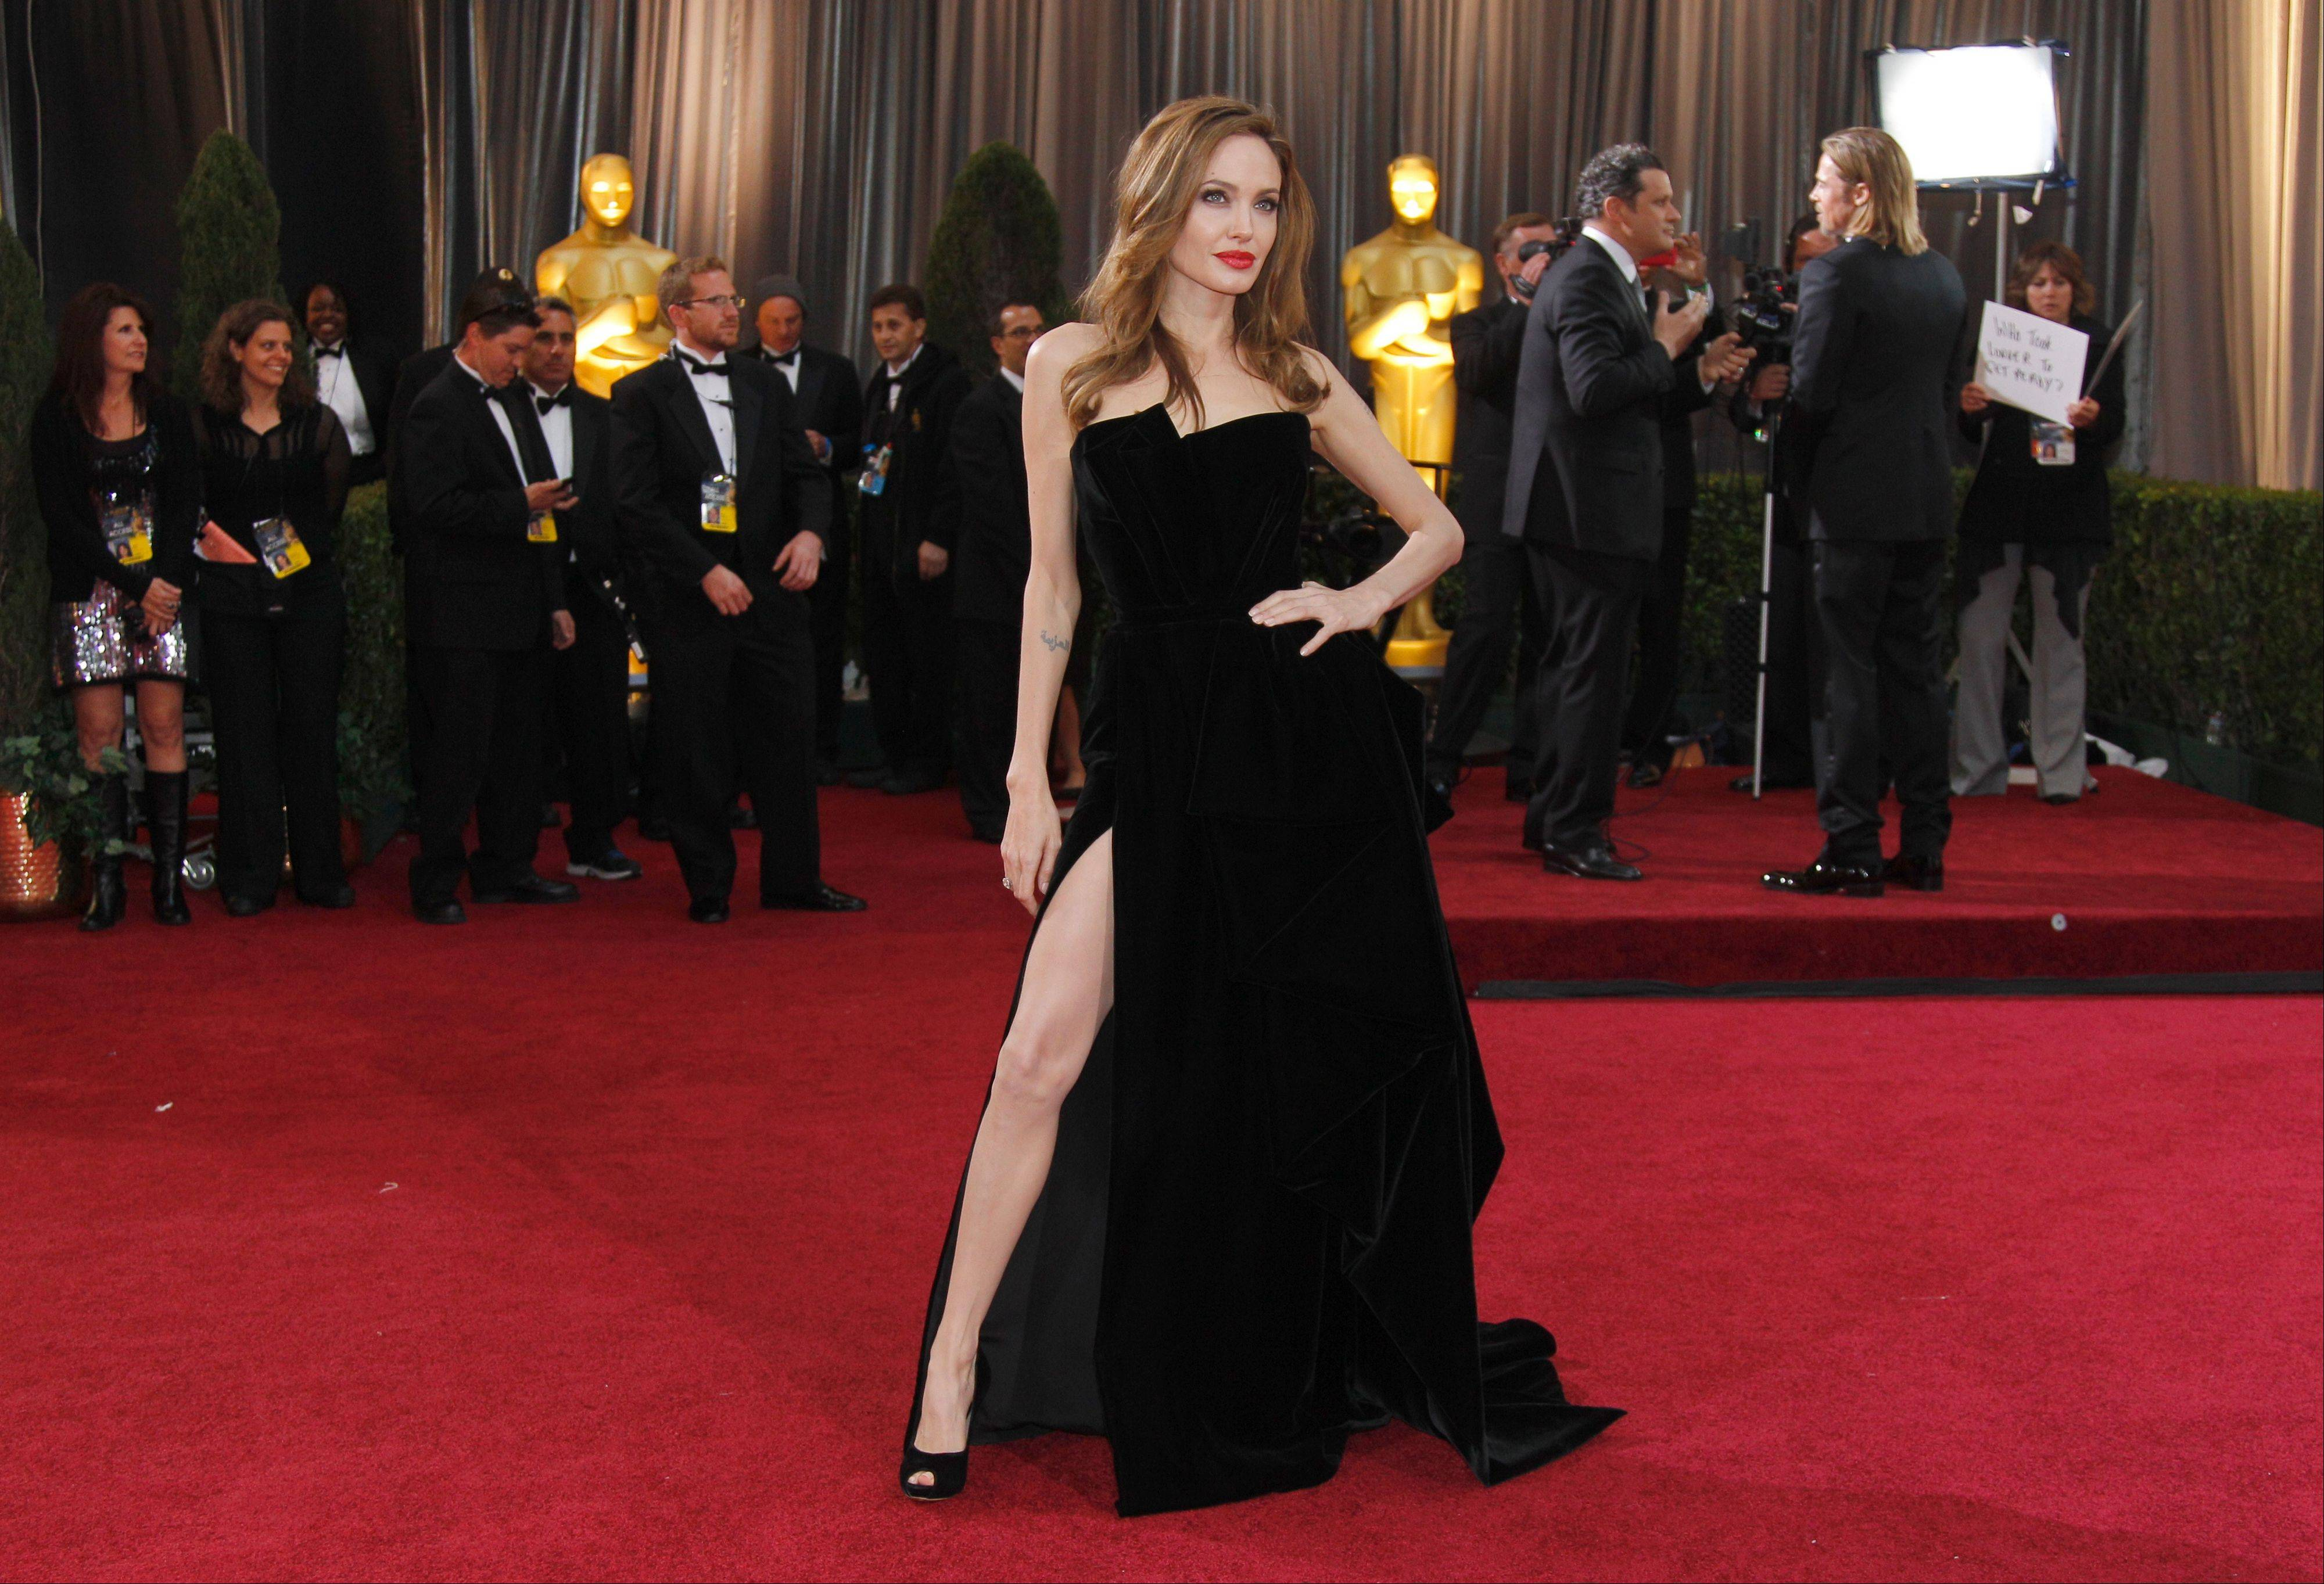 This Feb. 26, 2012 file photo shows Angelina Jolie posing before the 84th Academy Awards in the Hollywood section of Los Angeles. Every year fashion offers up the good, the bad and the ugly. But what the industry is really built on _ and consumers respond to _ is buzz. Jolie's leg, that peeked out of the high thigh-high slit of her Versace gown, was the most exciting appearance on the red carpet.